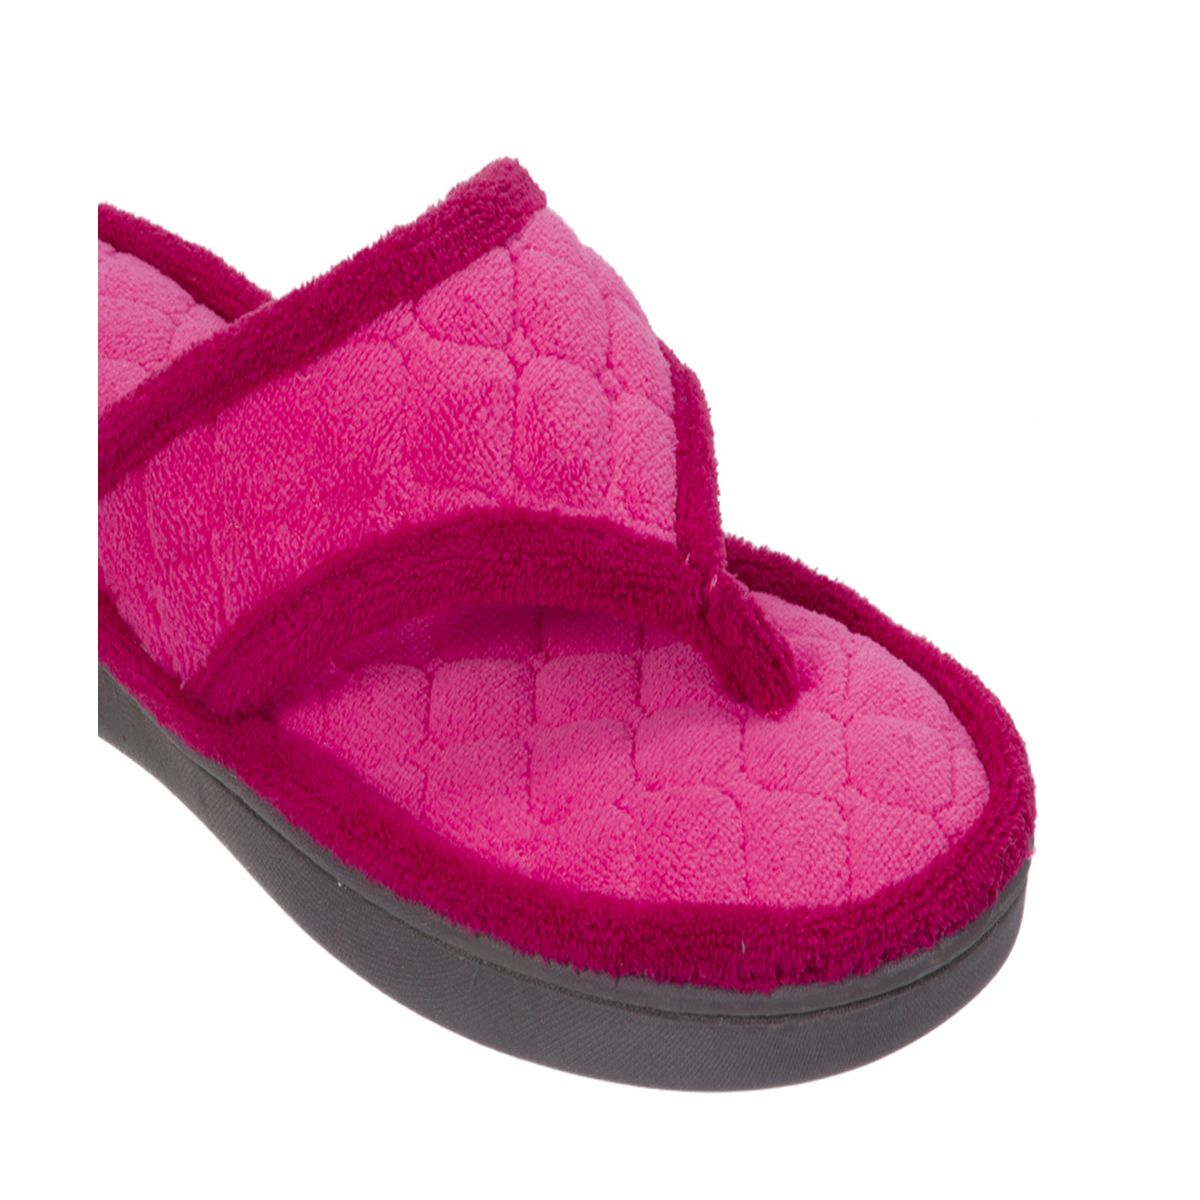 Dearfoams Quilted Terry Paradise Pink Flip Flop